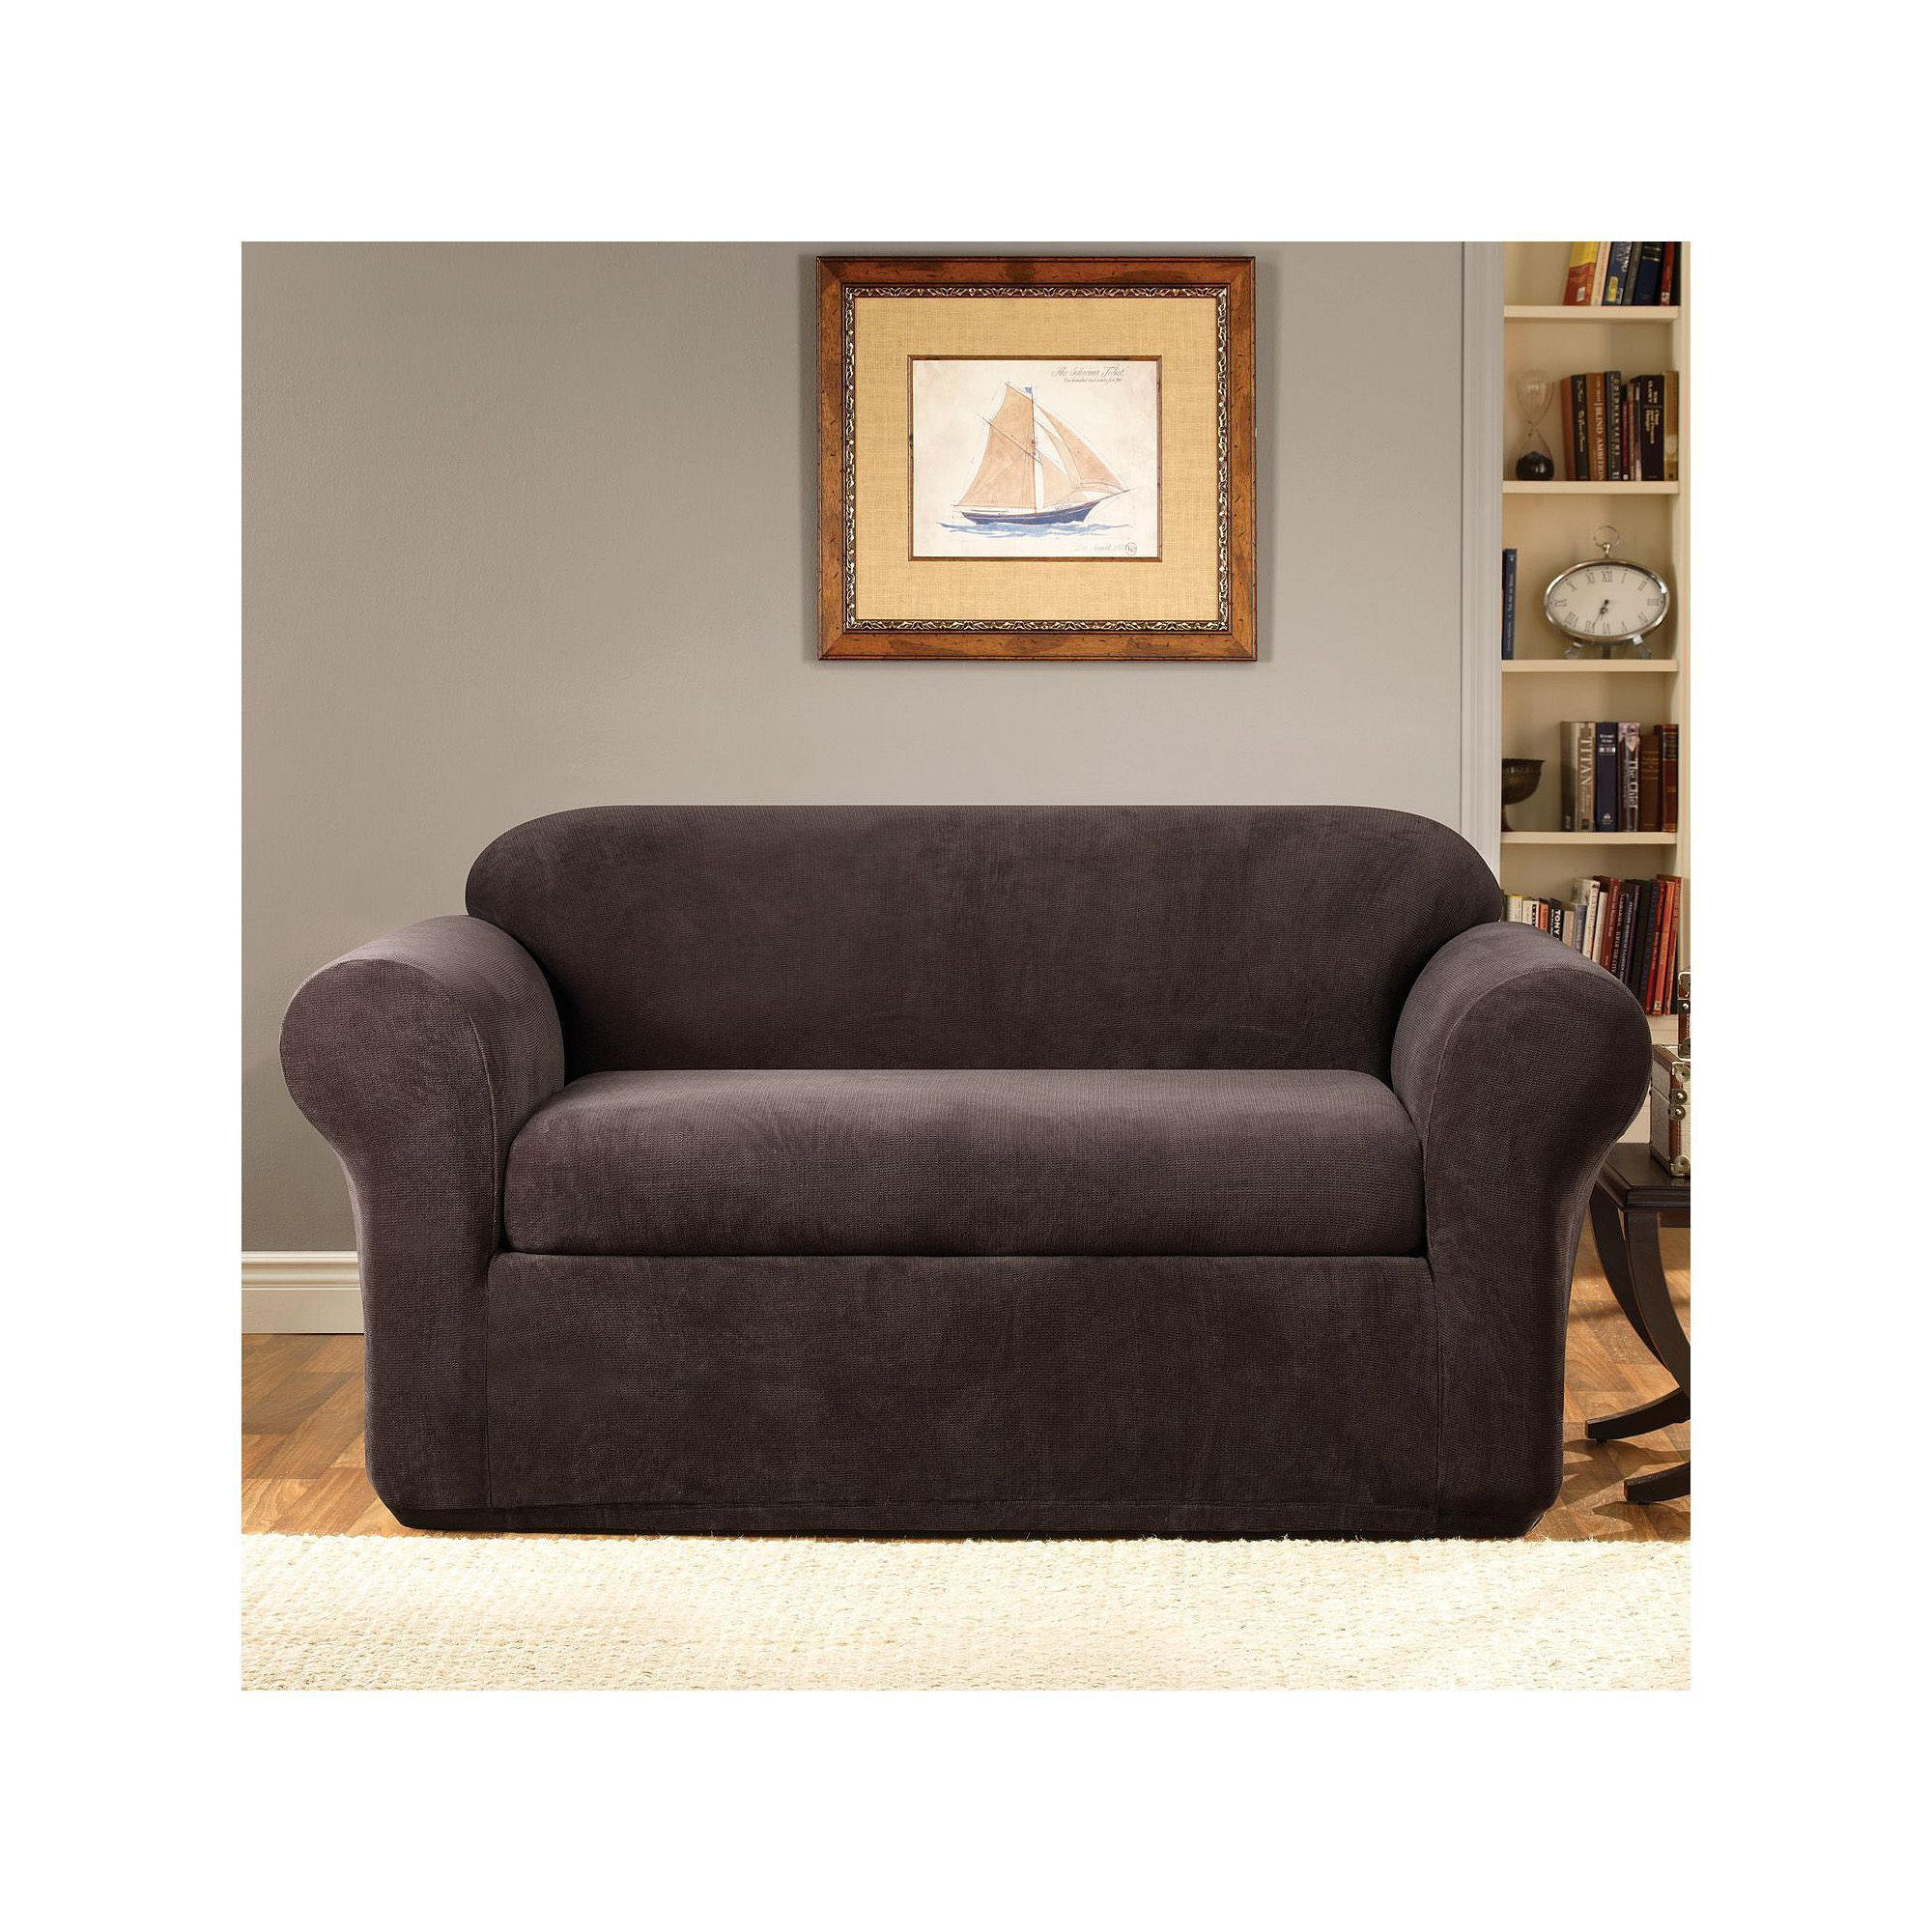 Sure Fit Stretch Metro 2 Pc Loveseat Slipcover Slipcovers Loveseat Slipcovers Cushions On Sofa